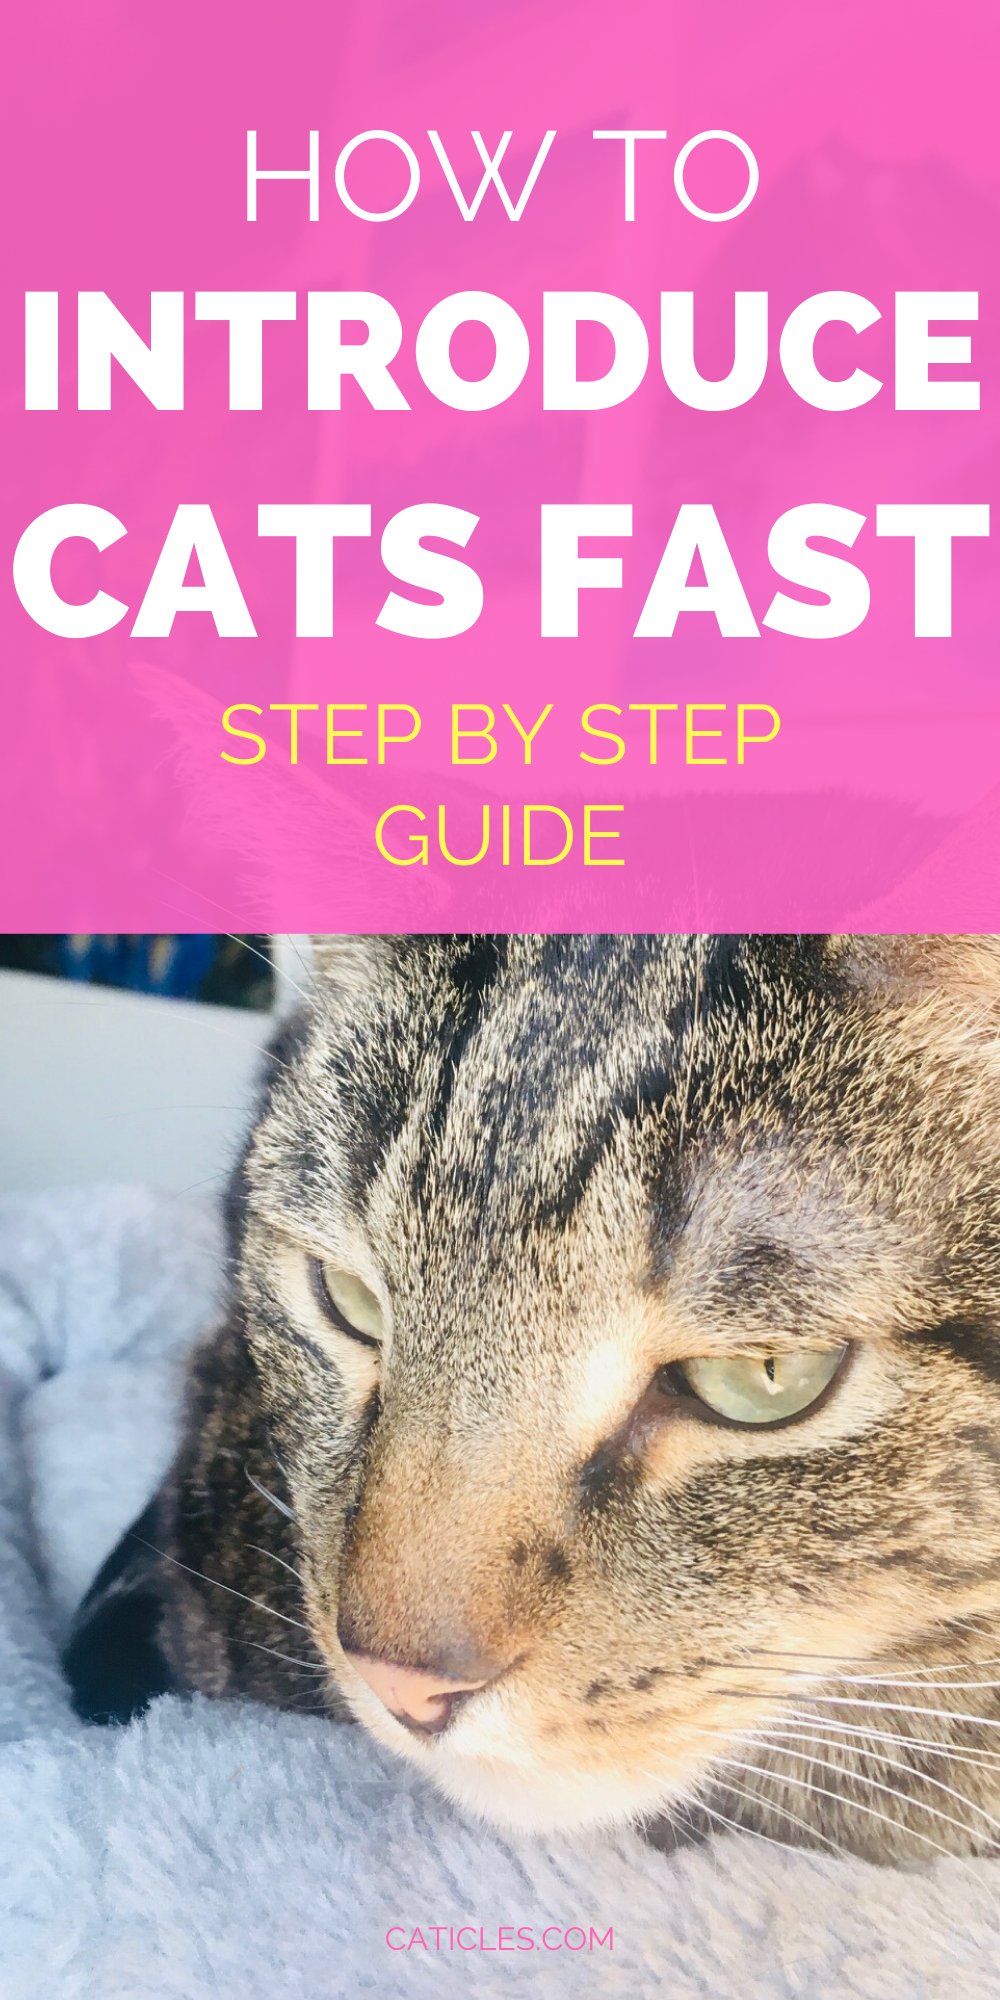 How To Introduce Cats Fast The Complete Guide To A Happy Household In 2020 How To Introduce Cats Pet Care Cats Introducing A New Cat